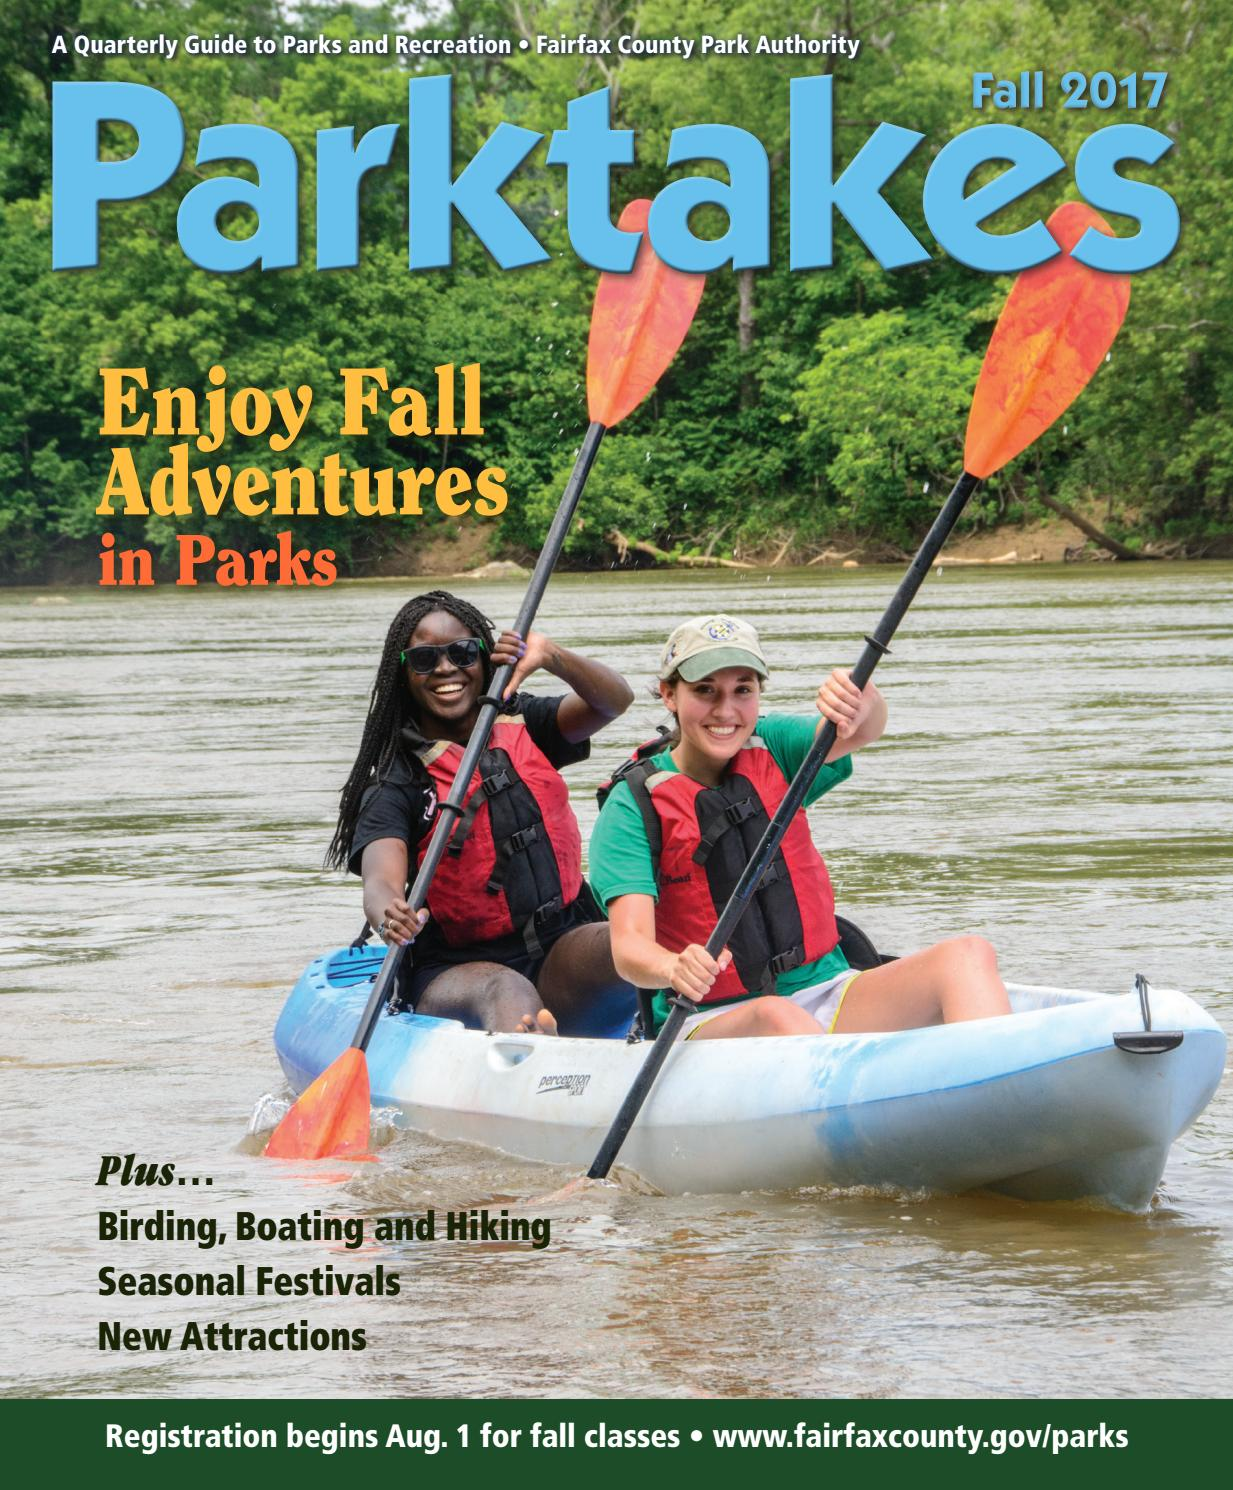 8f7613114 Fall Parktakes 2017 by Fairfax County Park Authority - issuu